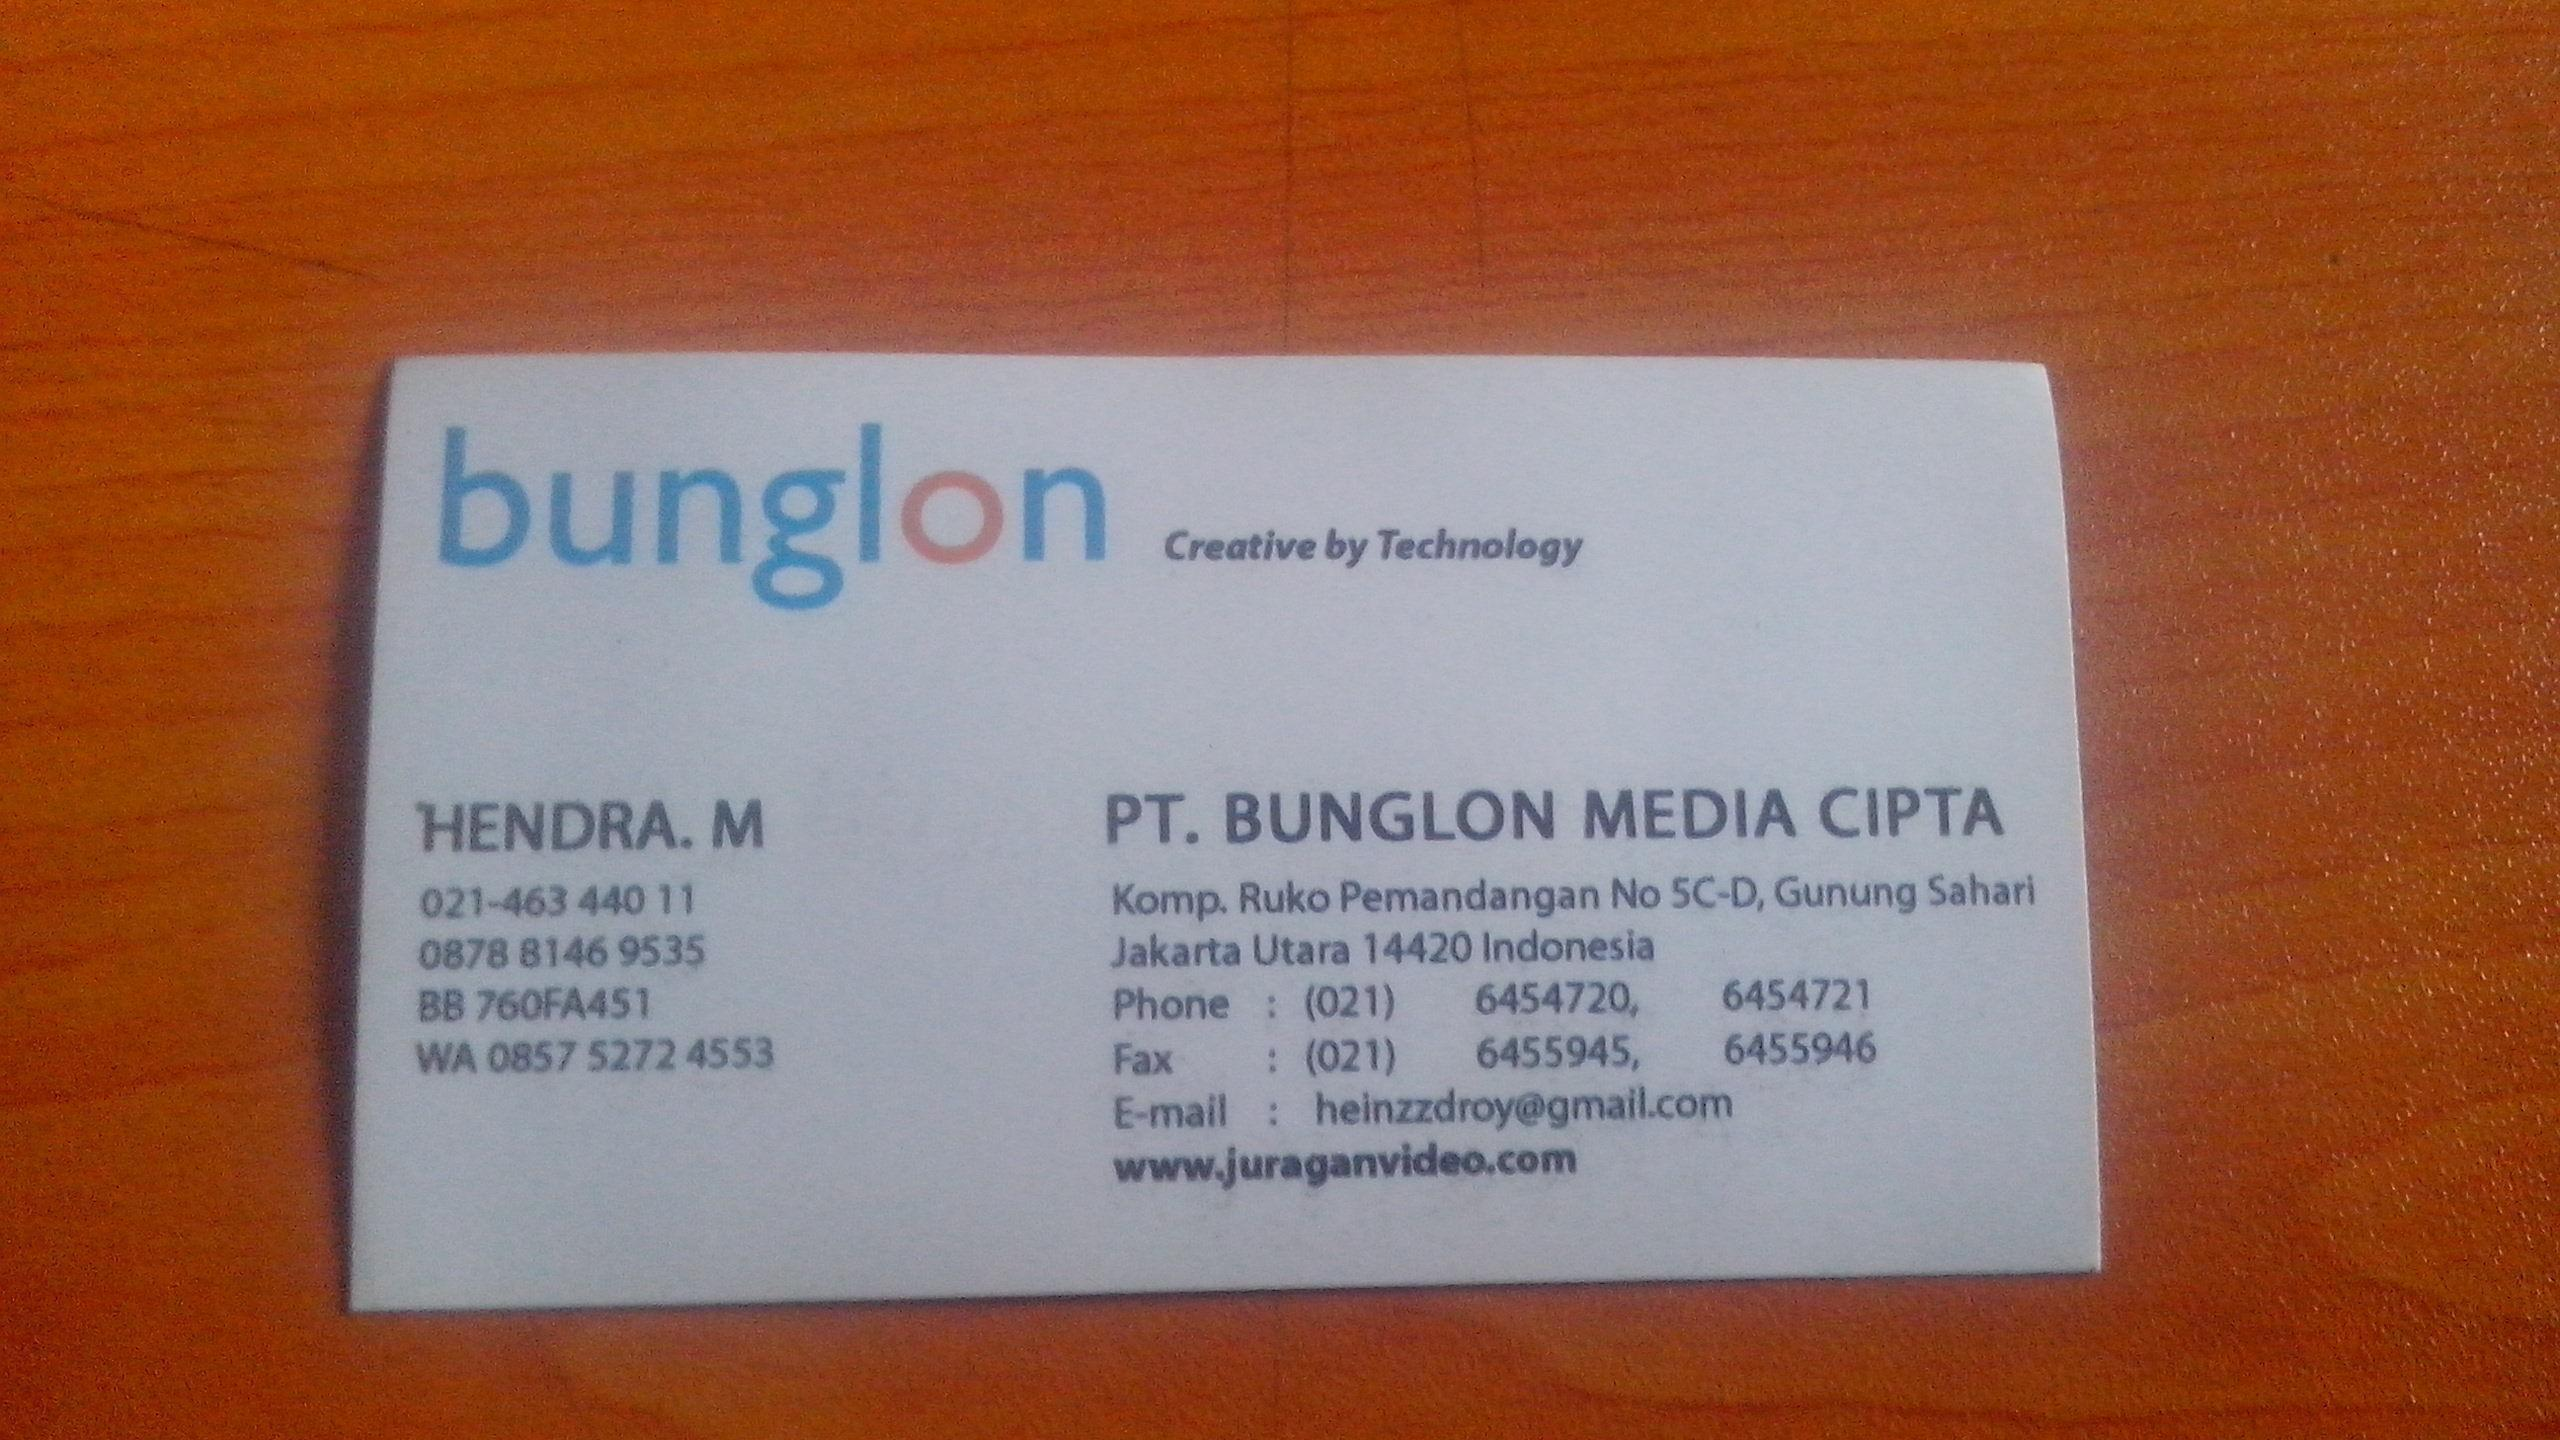 Jasa Video Production, Video Post Production, Shooting